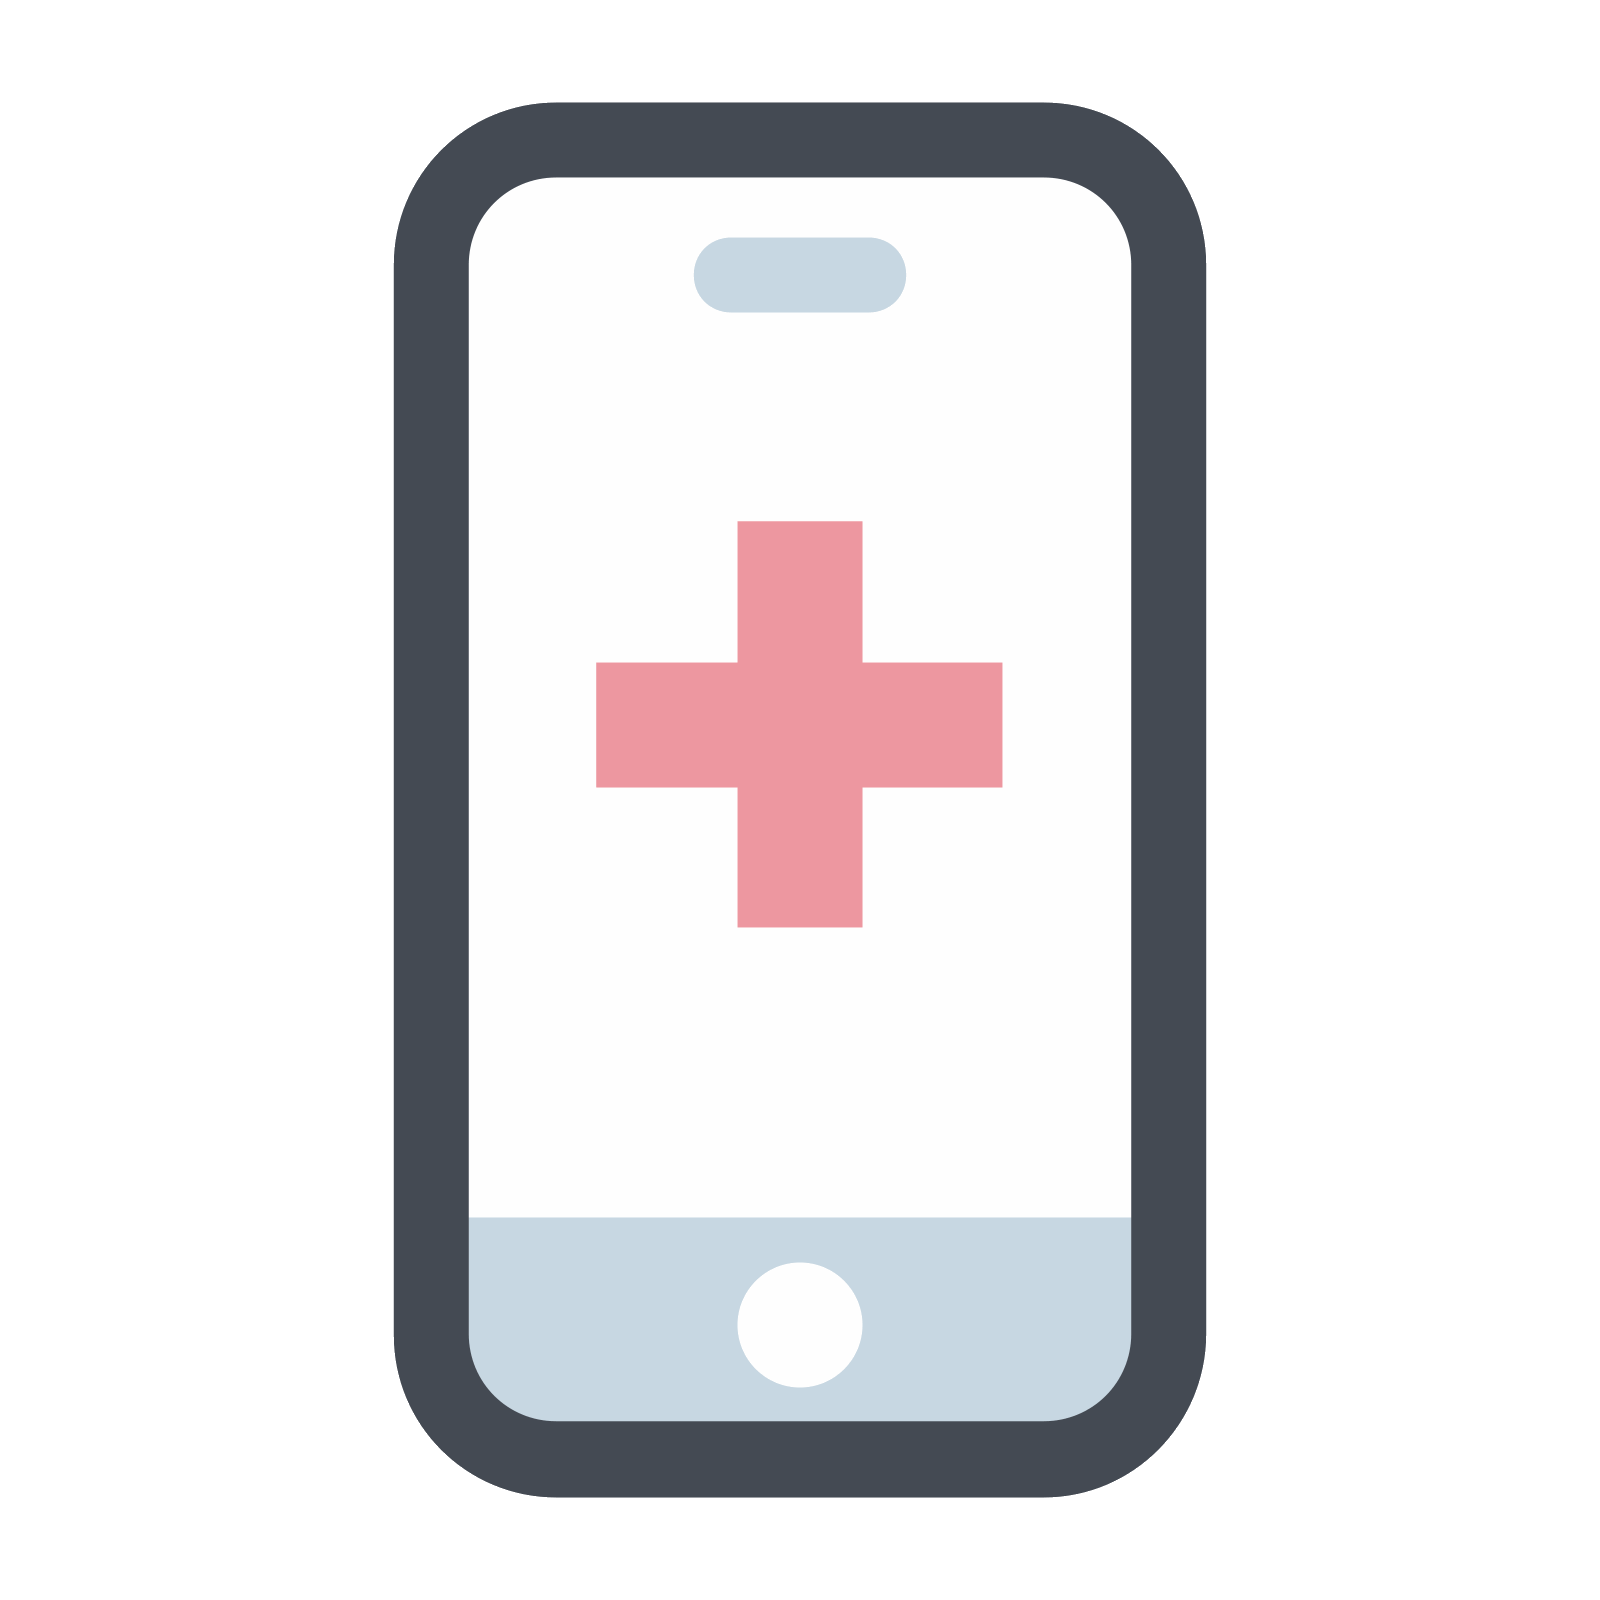 Cell phone vector png. Icona medical mobile app